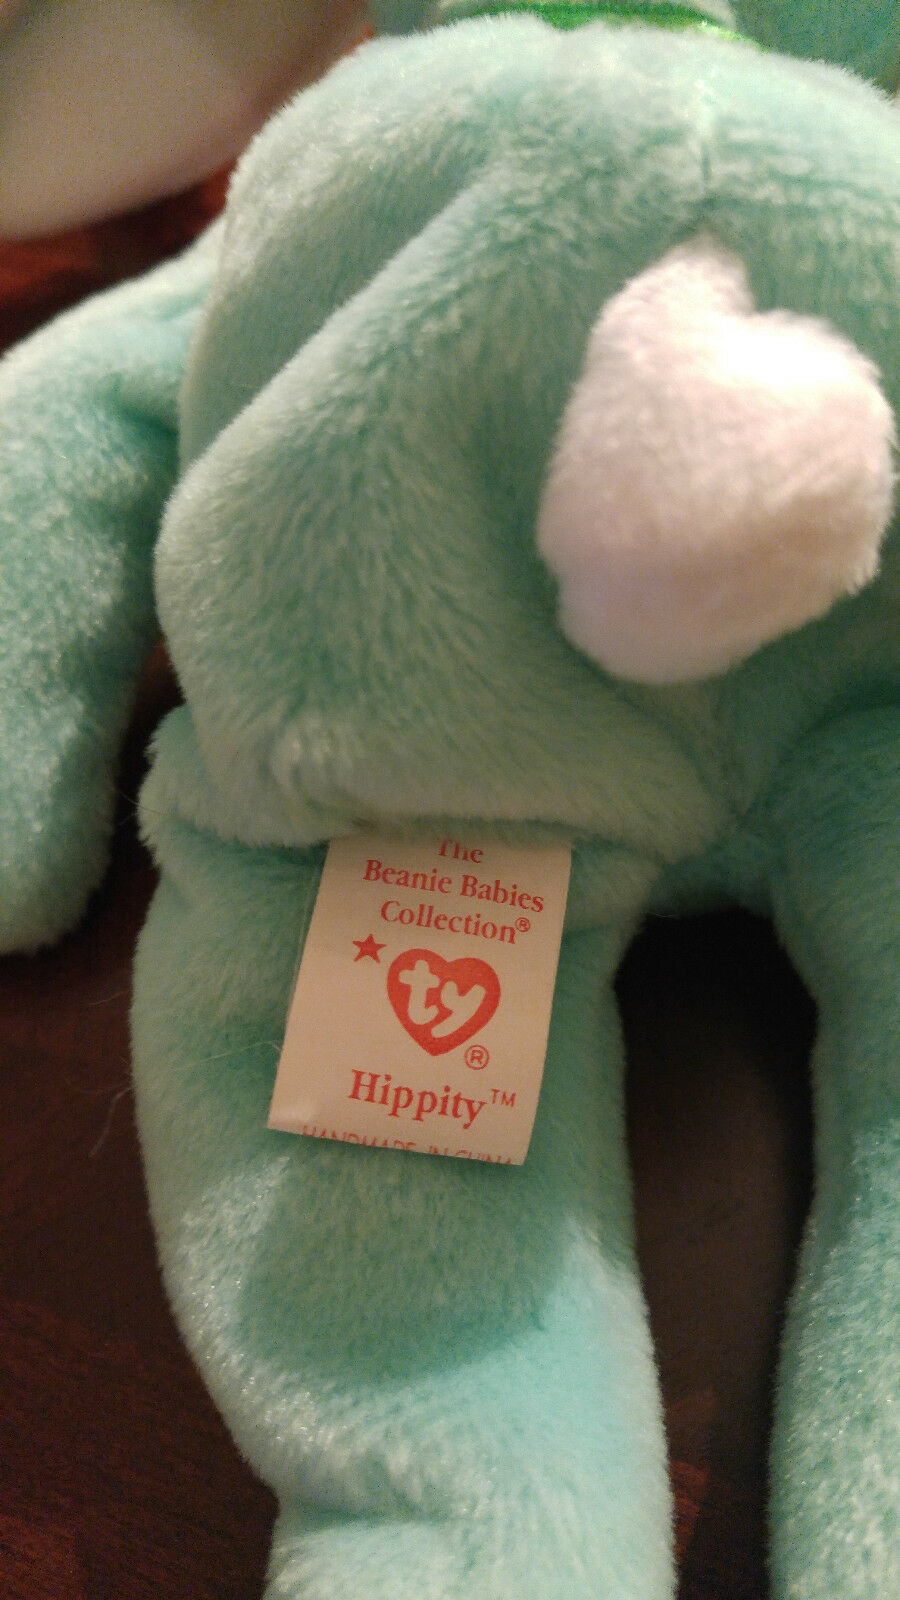 Hippity-Ty Beanie Baby 1996 1996 1996 Rare Collectible Retired Bunny ERROR original PVC bbb228